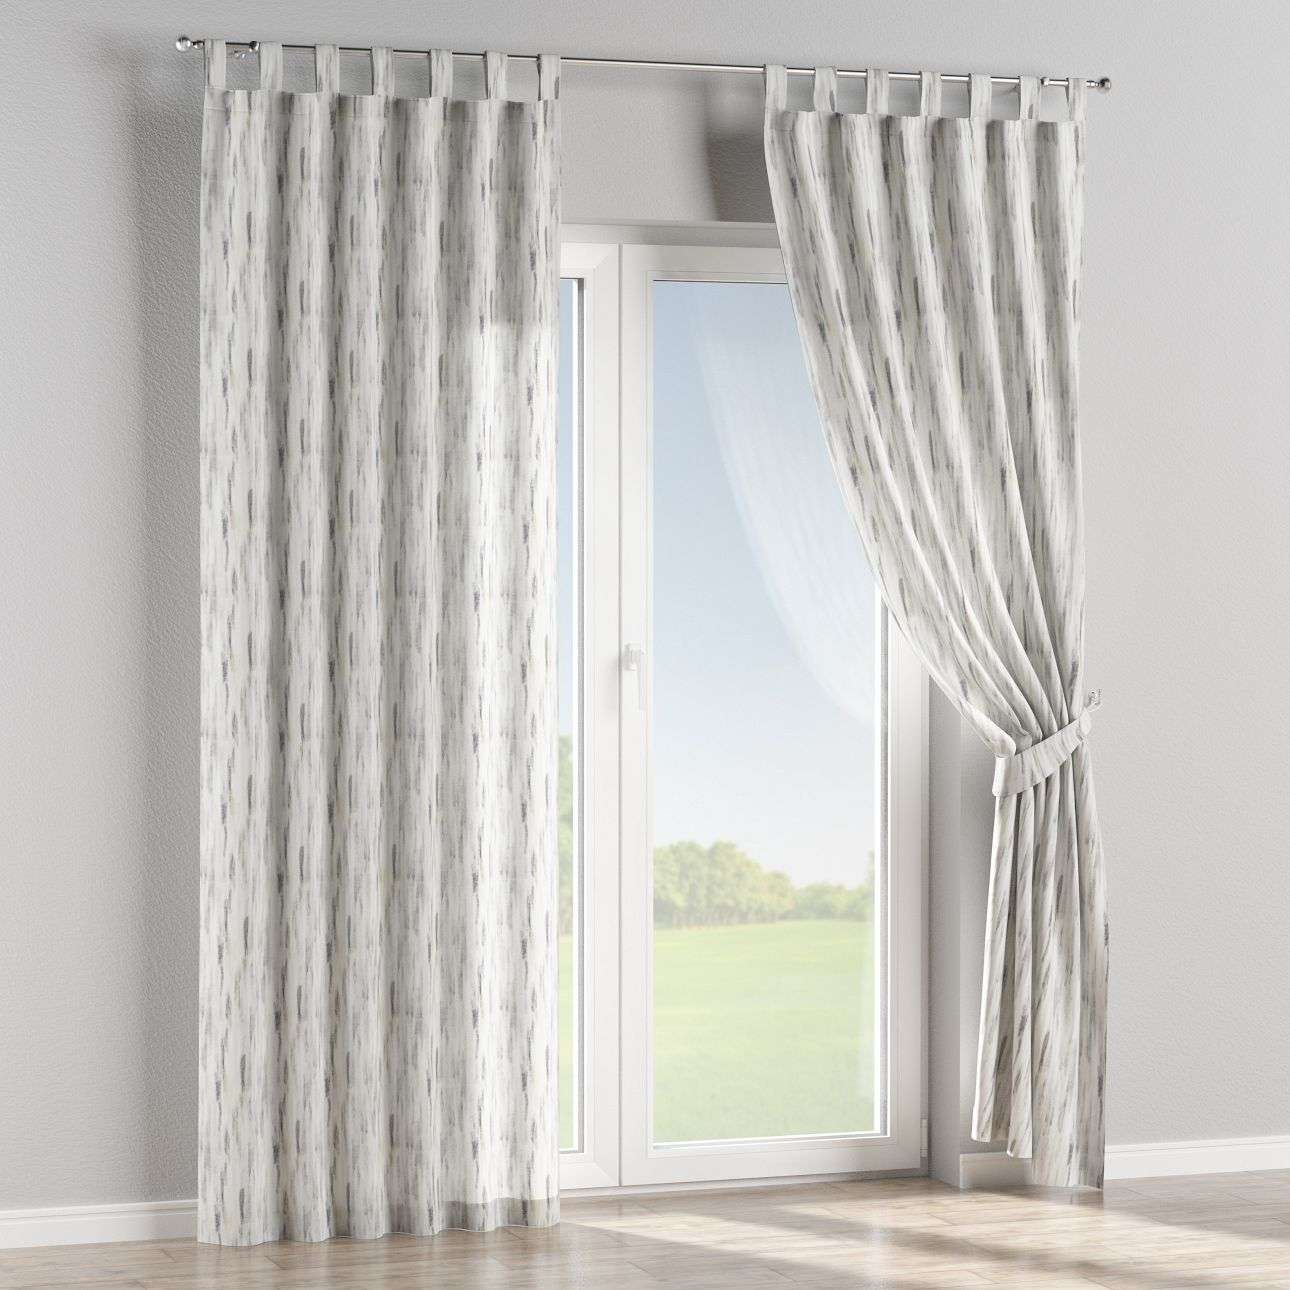 Tab top curtains in collection Aquarelle, fabric: 140-66